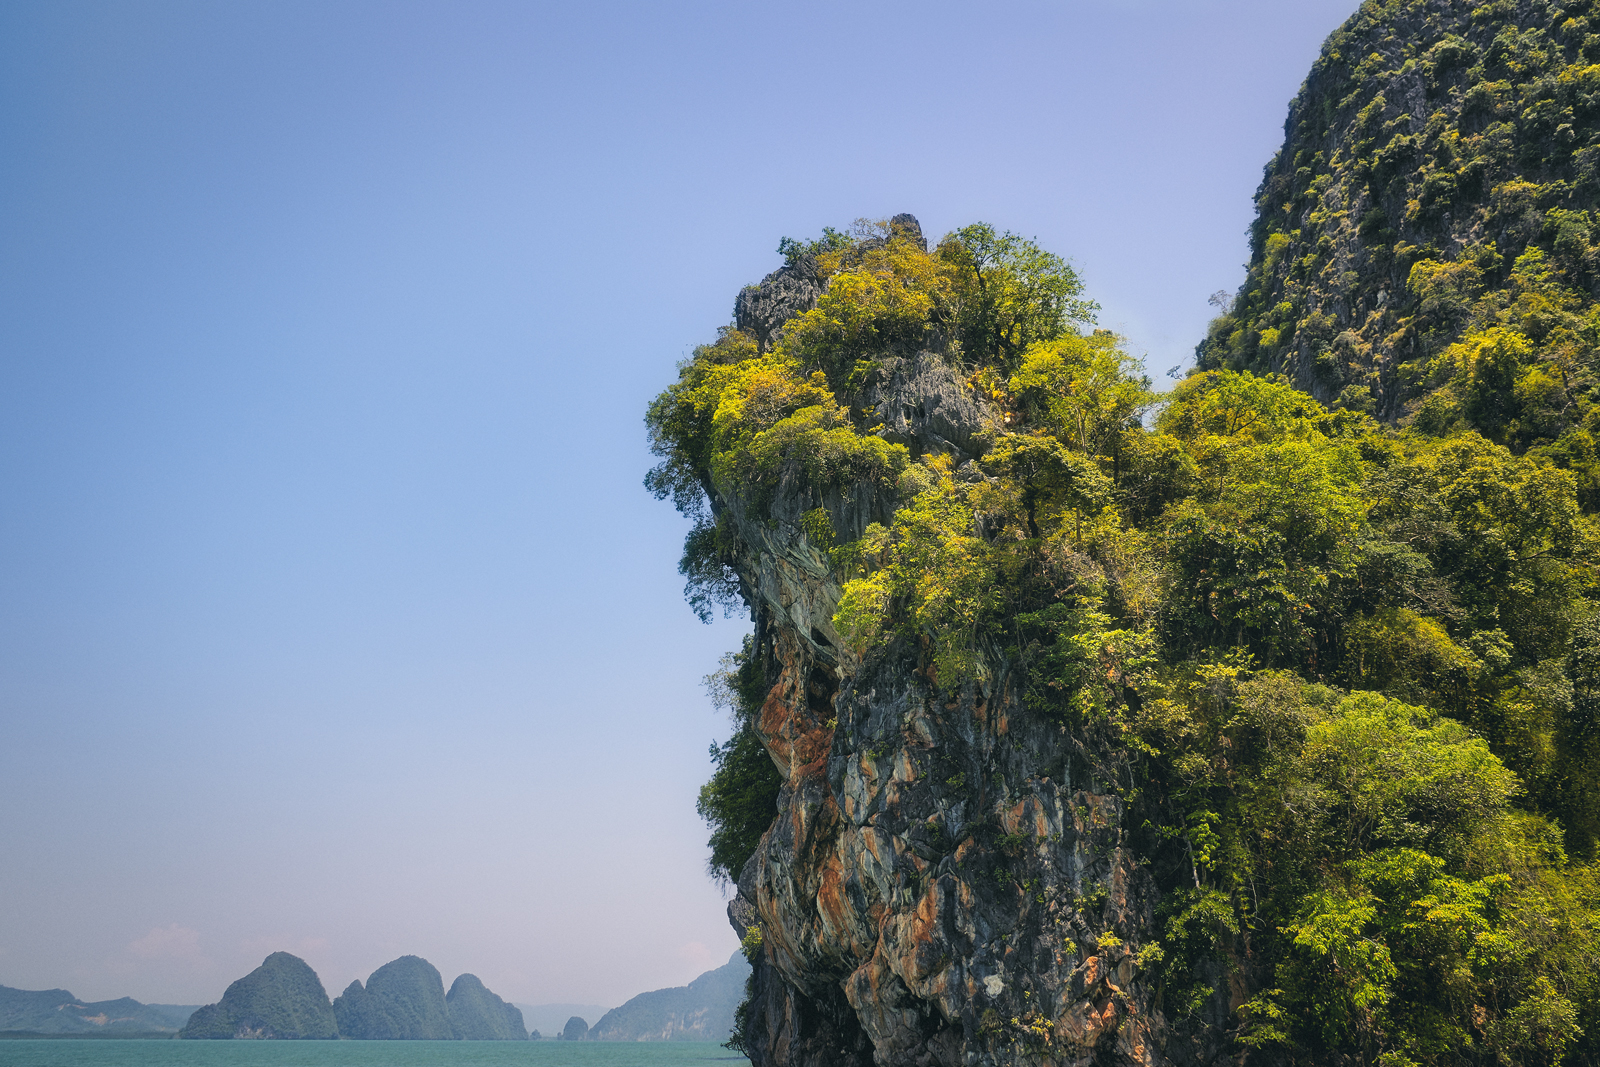 Limestone Islands of Khao Phing Kan